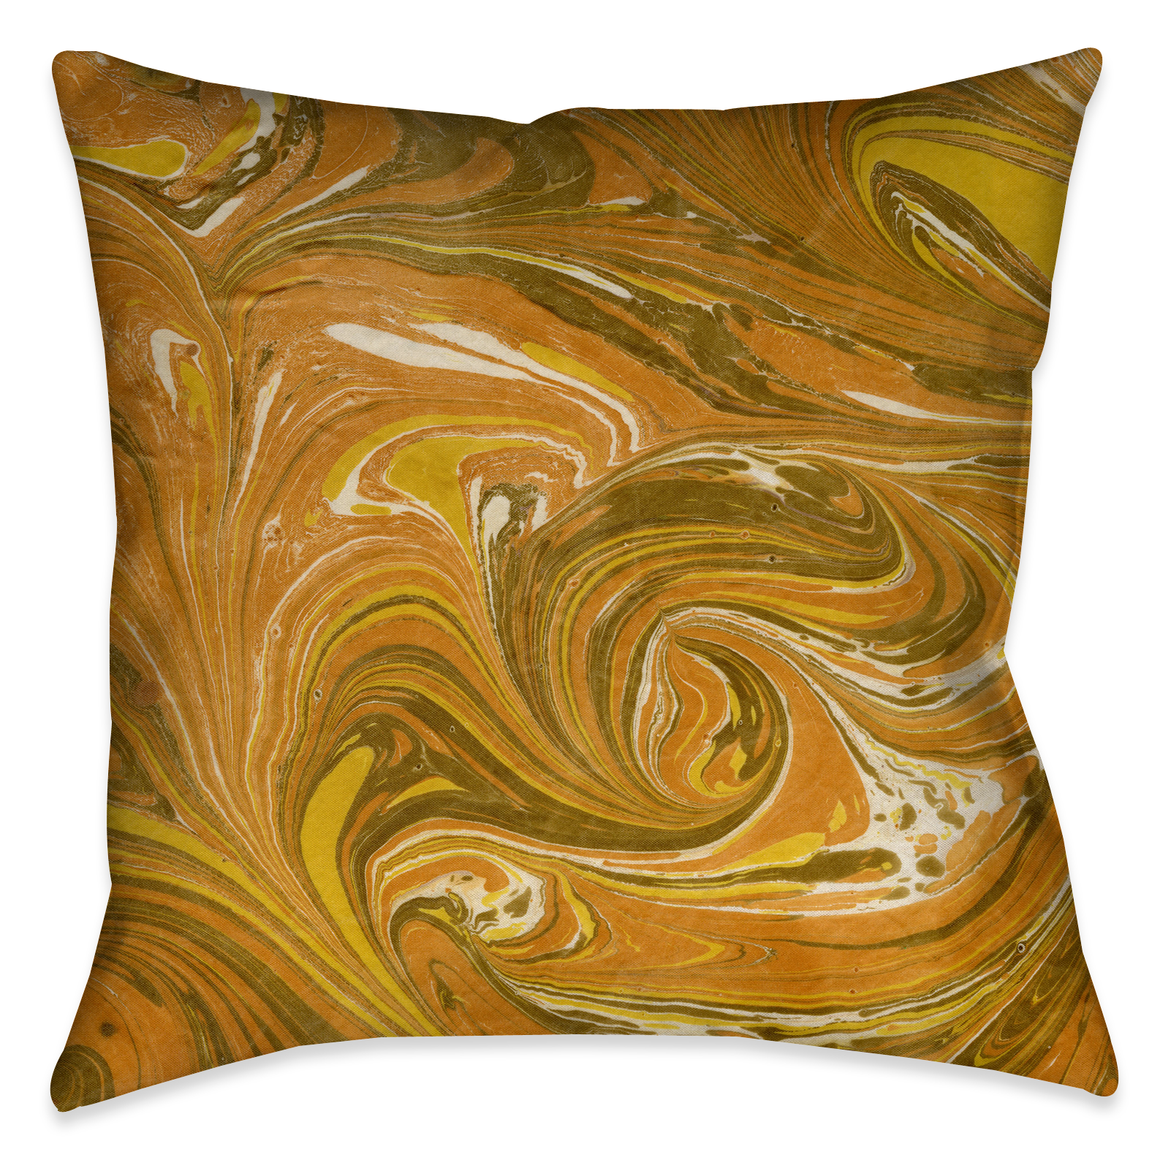 Ochre Marble Decorative Pillow